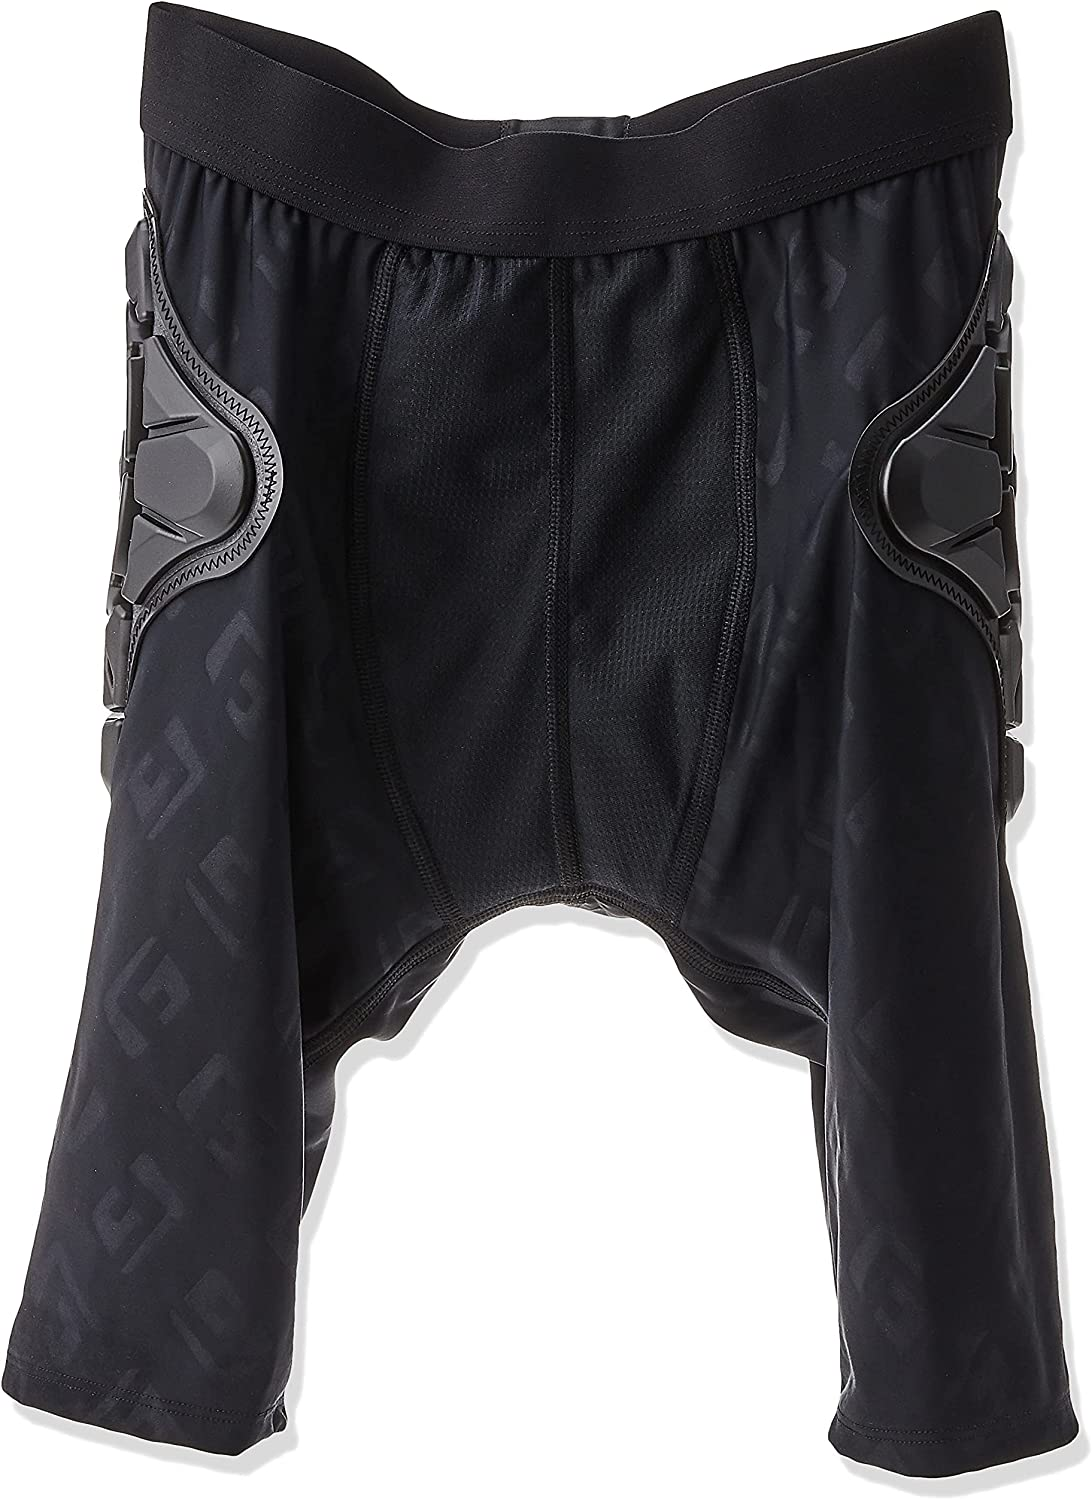 Limited time sale G-Form Pro-X Houston Mall Padded Compression Shorts - Adult Youth and